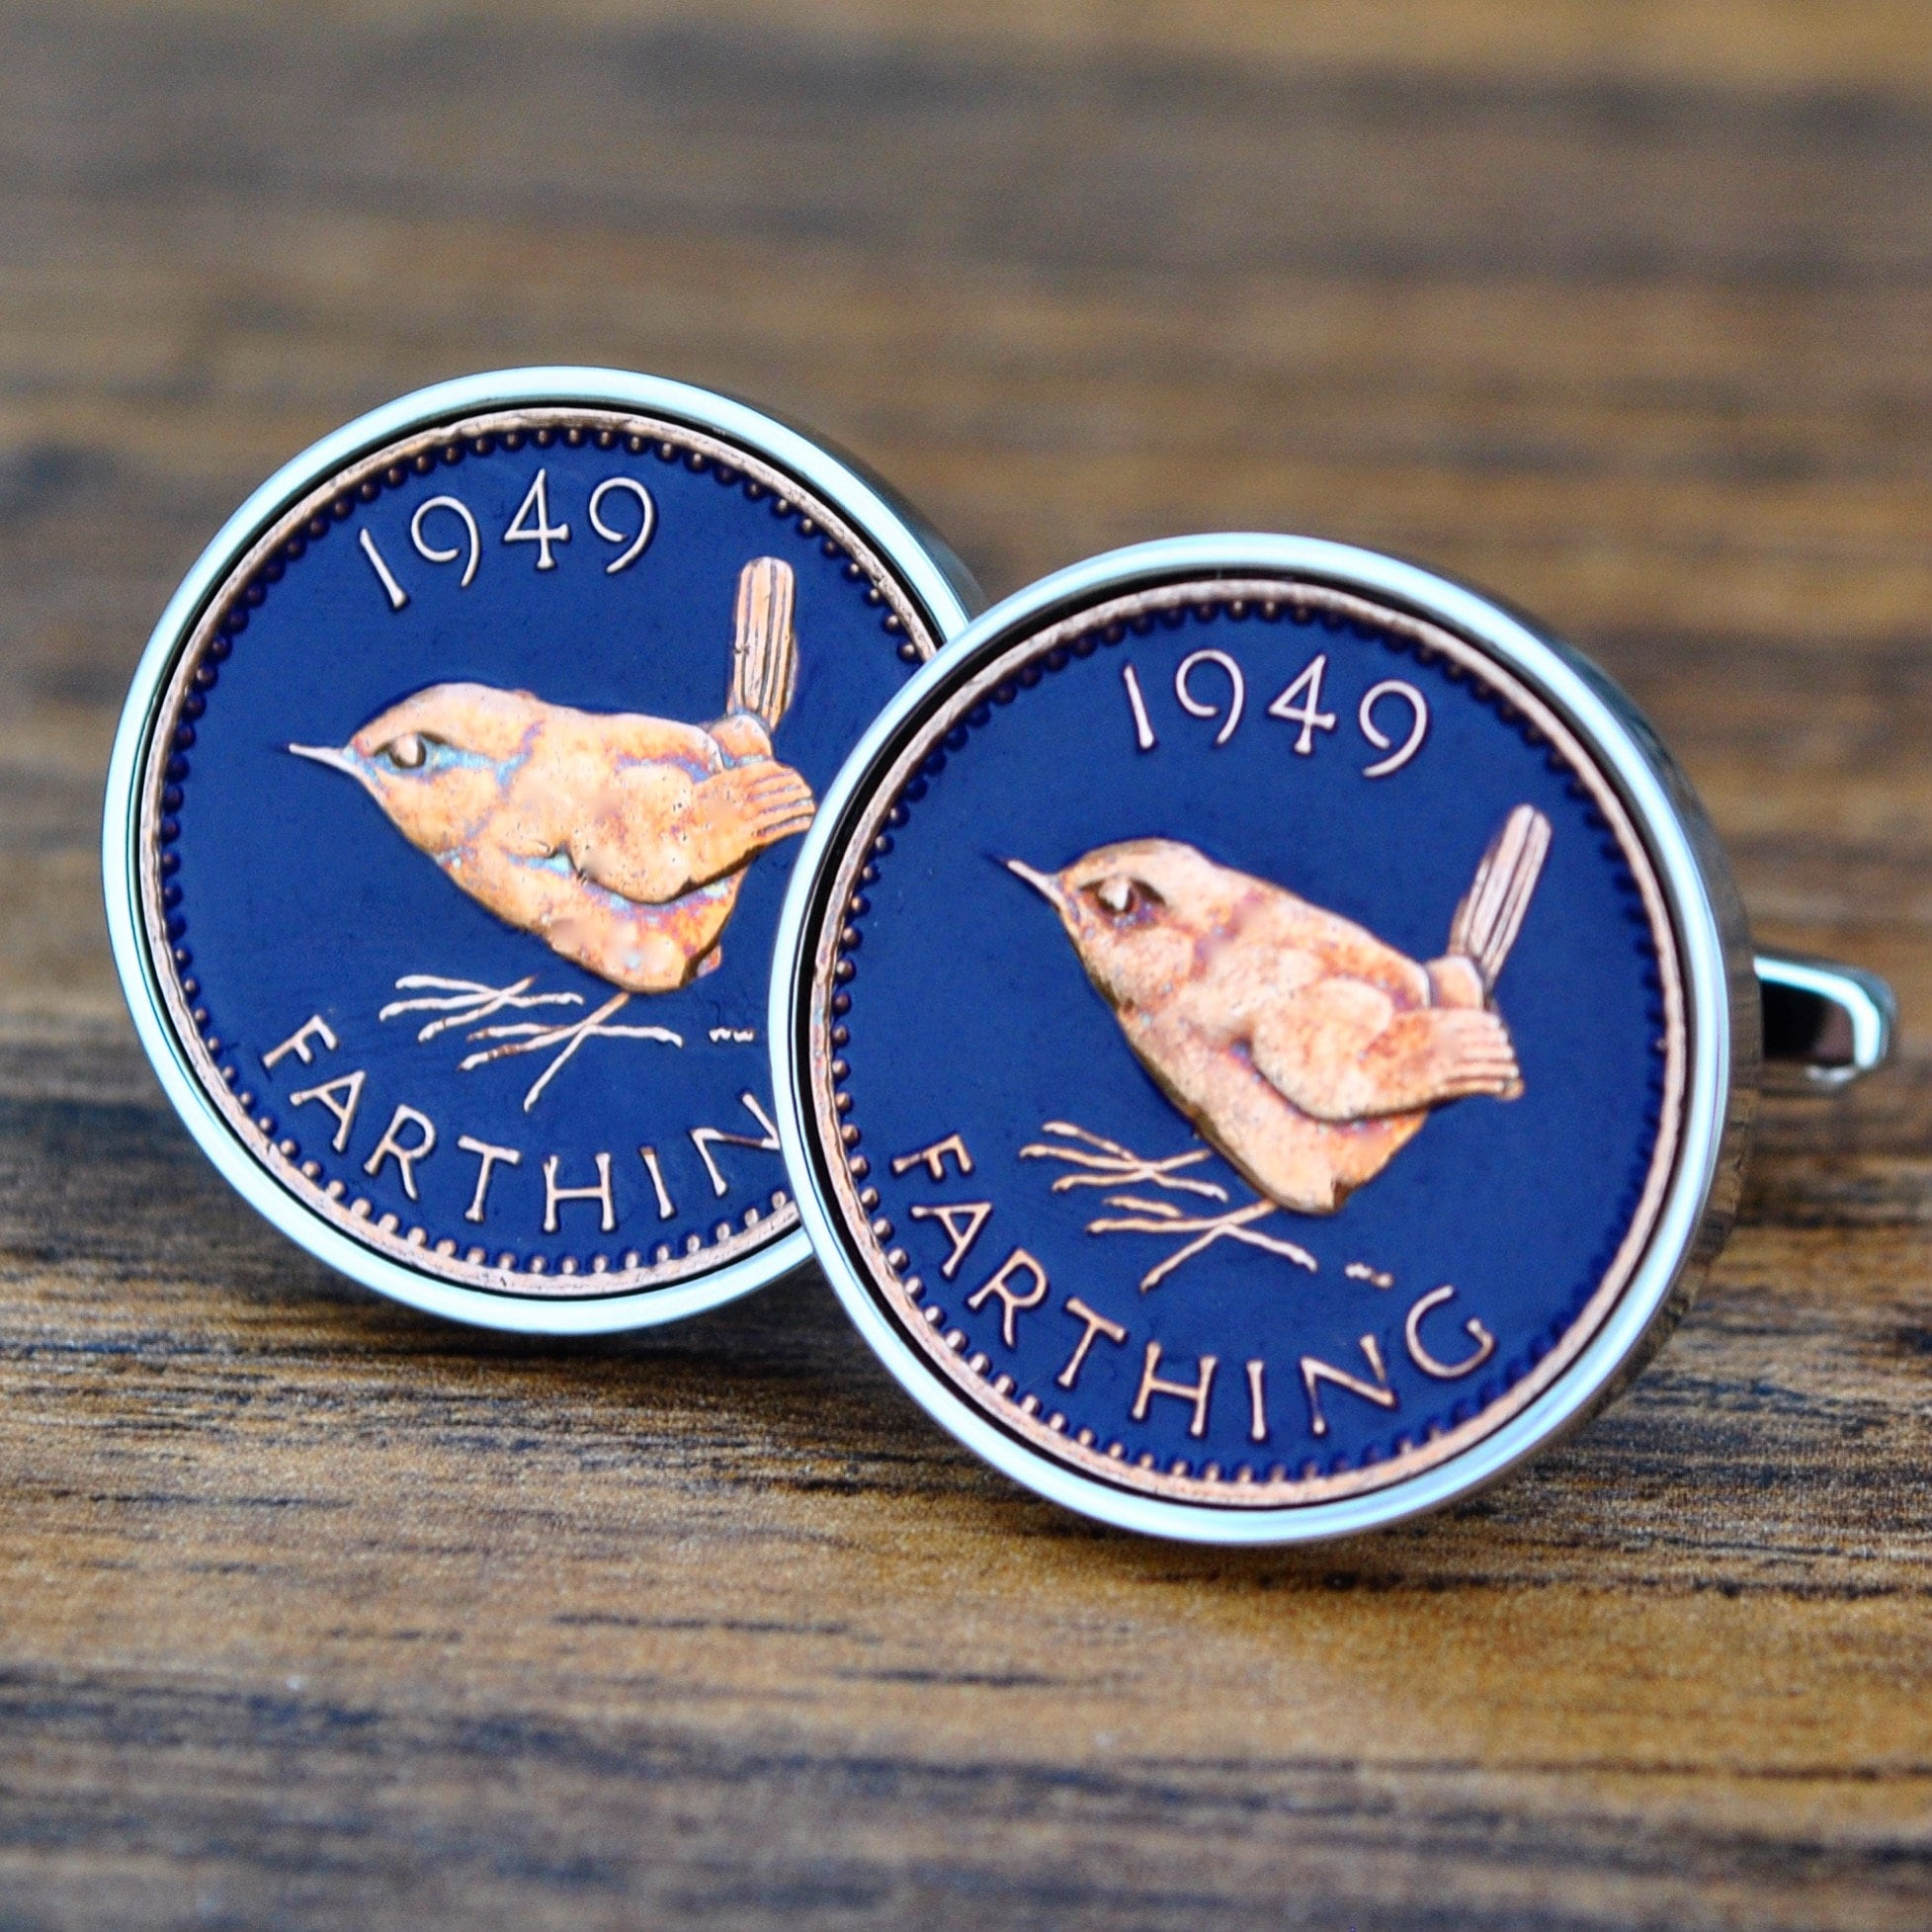 70th Birthday Gift Him 1949 Cufflinks Farthing Born In Coin CufflinksMens Anniversary Dad